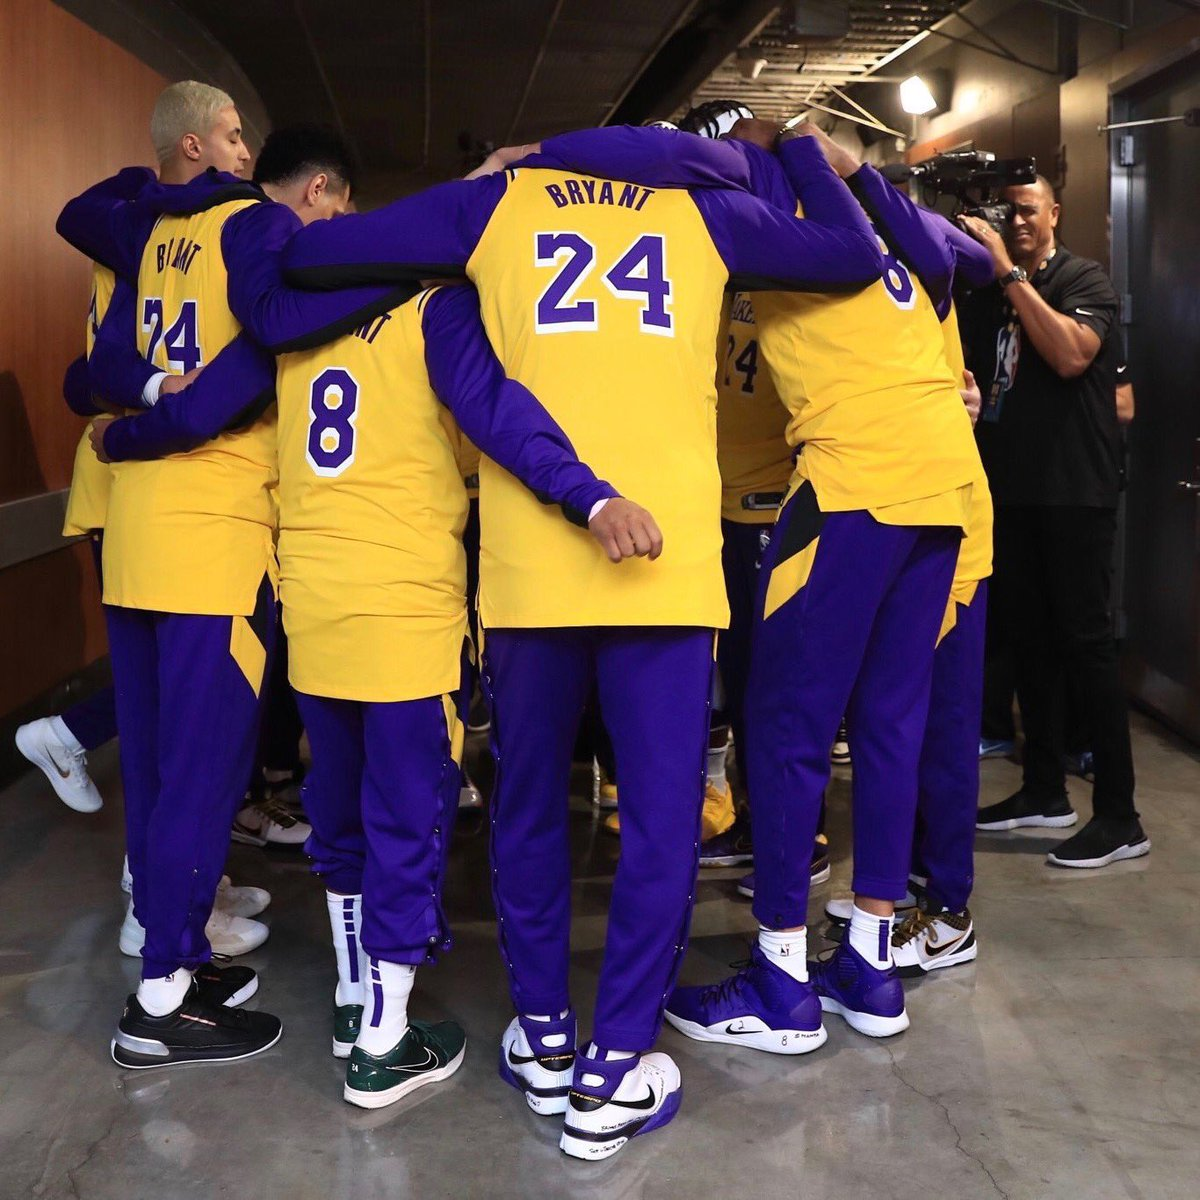 Lebron James and the Lakers pay respect and tributes to the legendary Kobe Bryant! #lakersgame #kobetributepic.twitter.com/DOxsEDK5a7